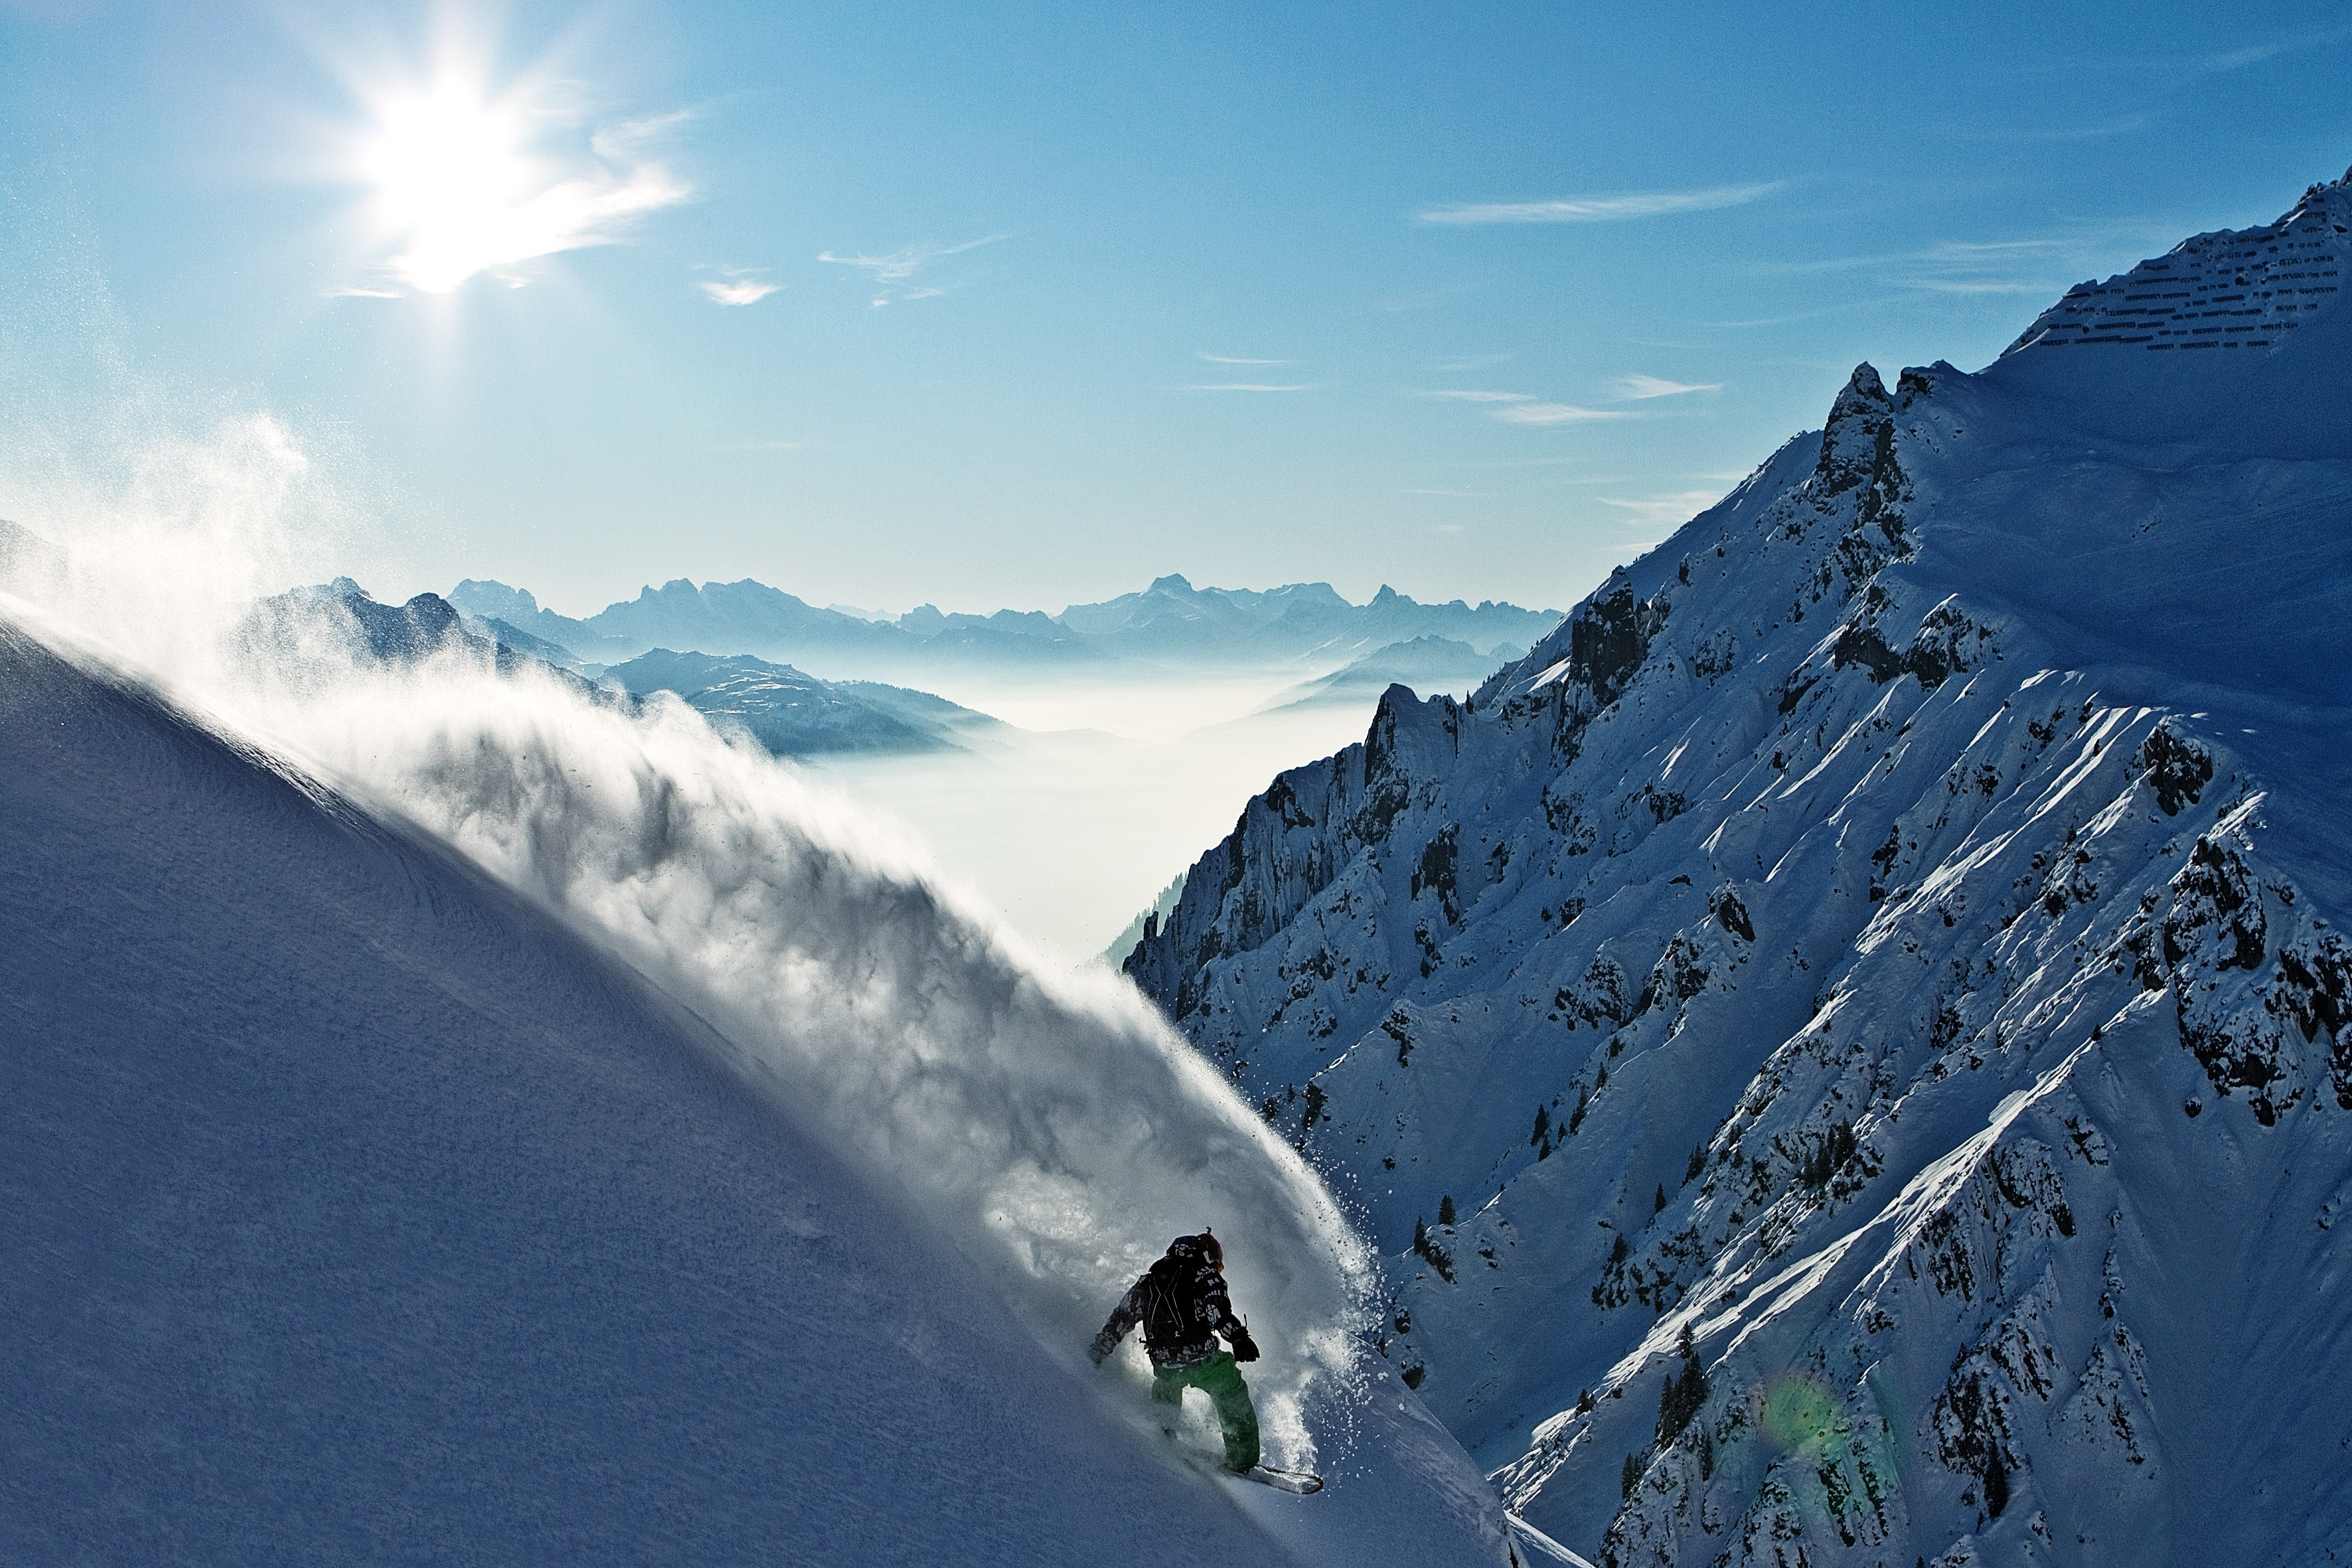 Into The White Customized Backcountry Adventures At